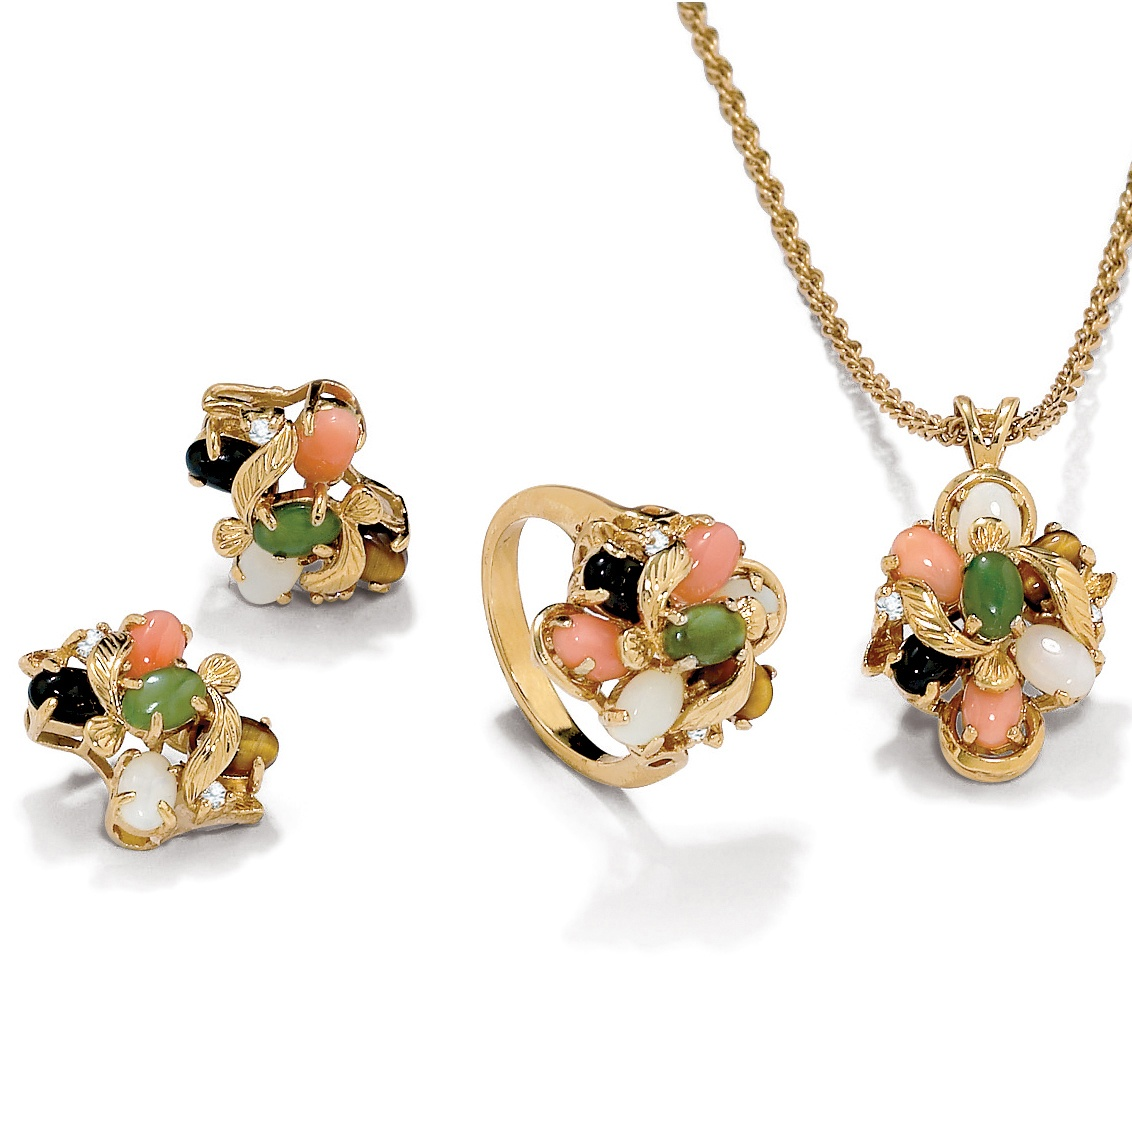 Genuine Coral, Opal, Jade, Onyx, Tiger's-Eye 14k Gold-Plated Necklace, Earrings and Ring Set